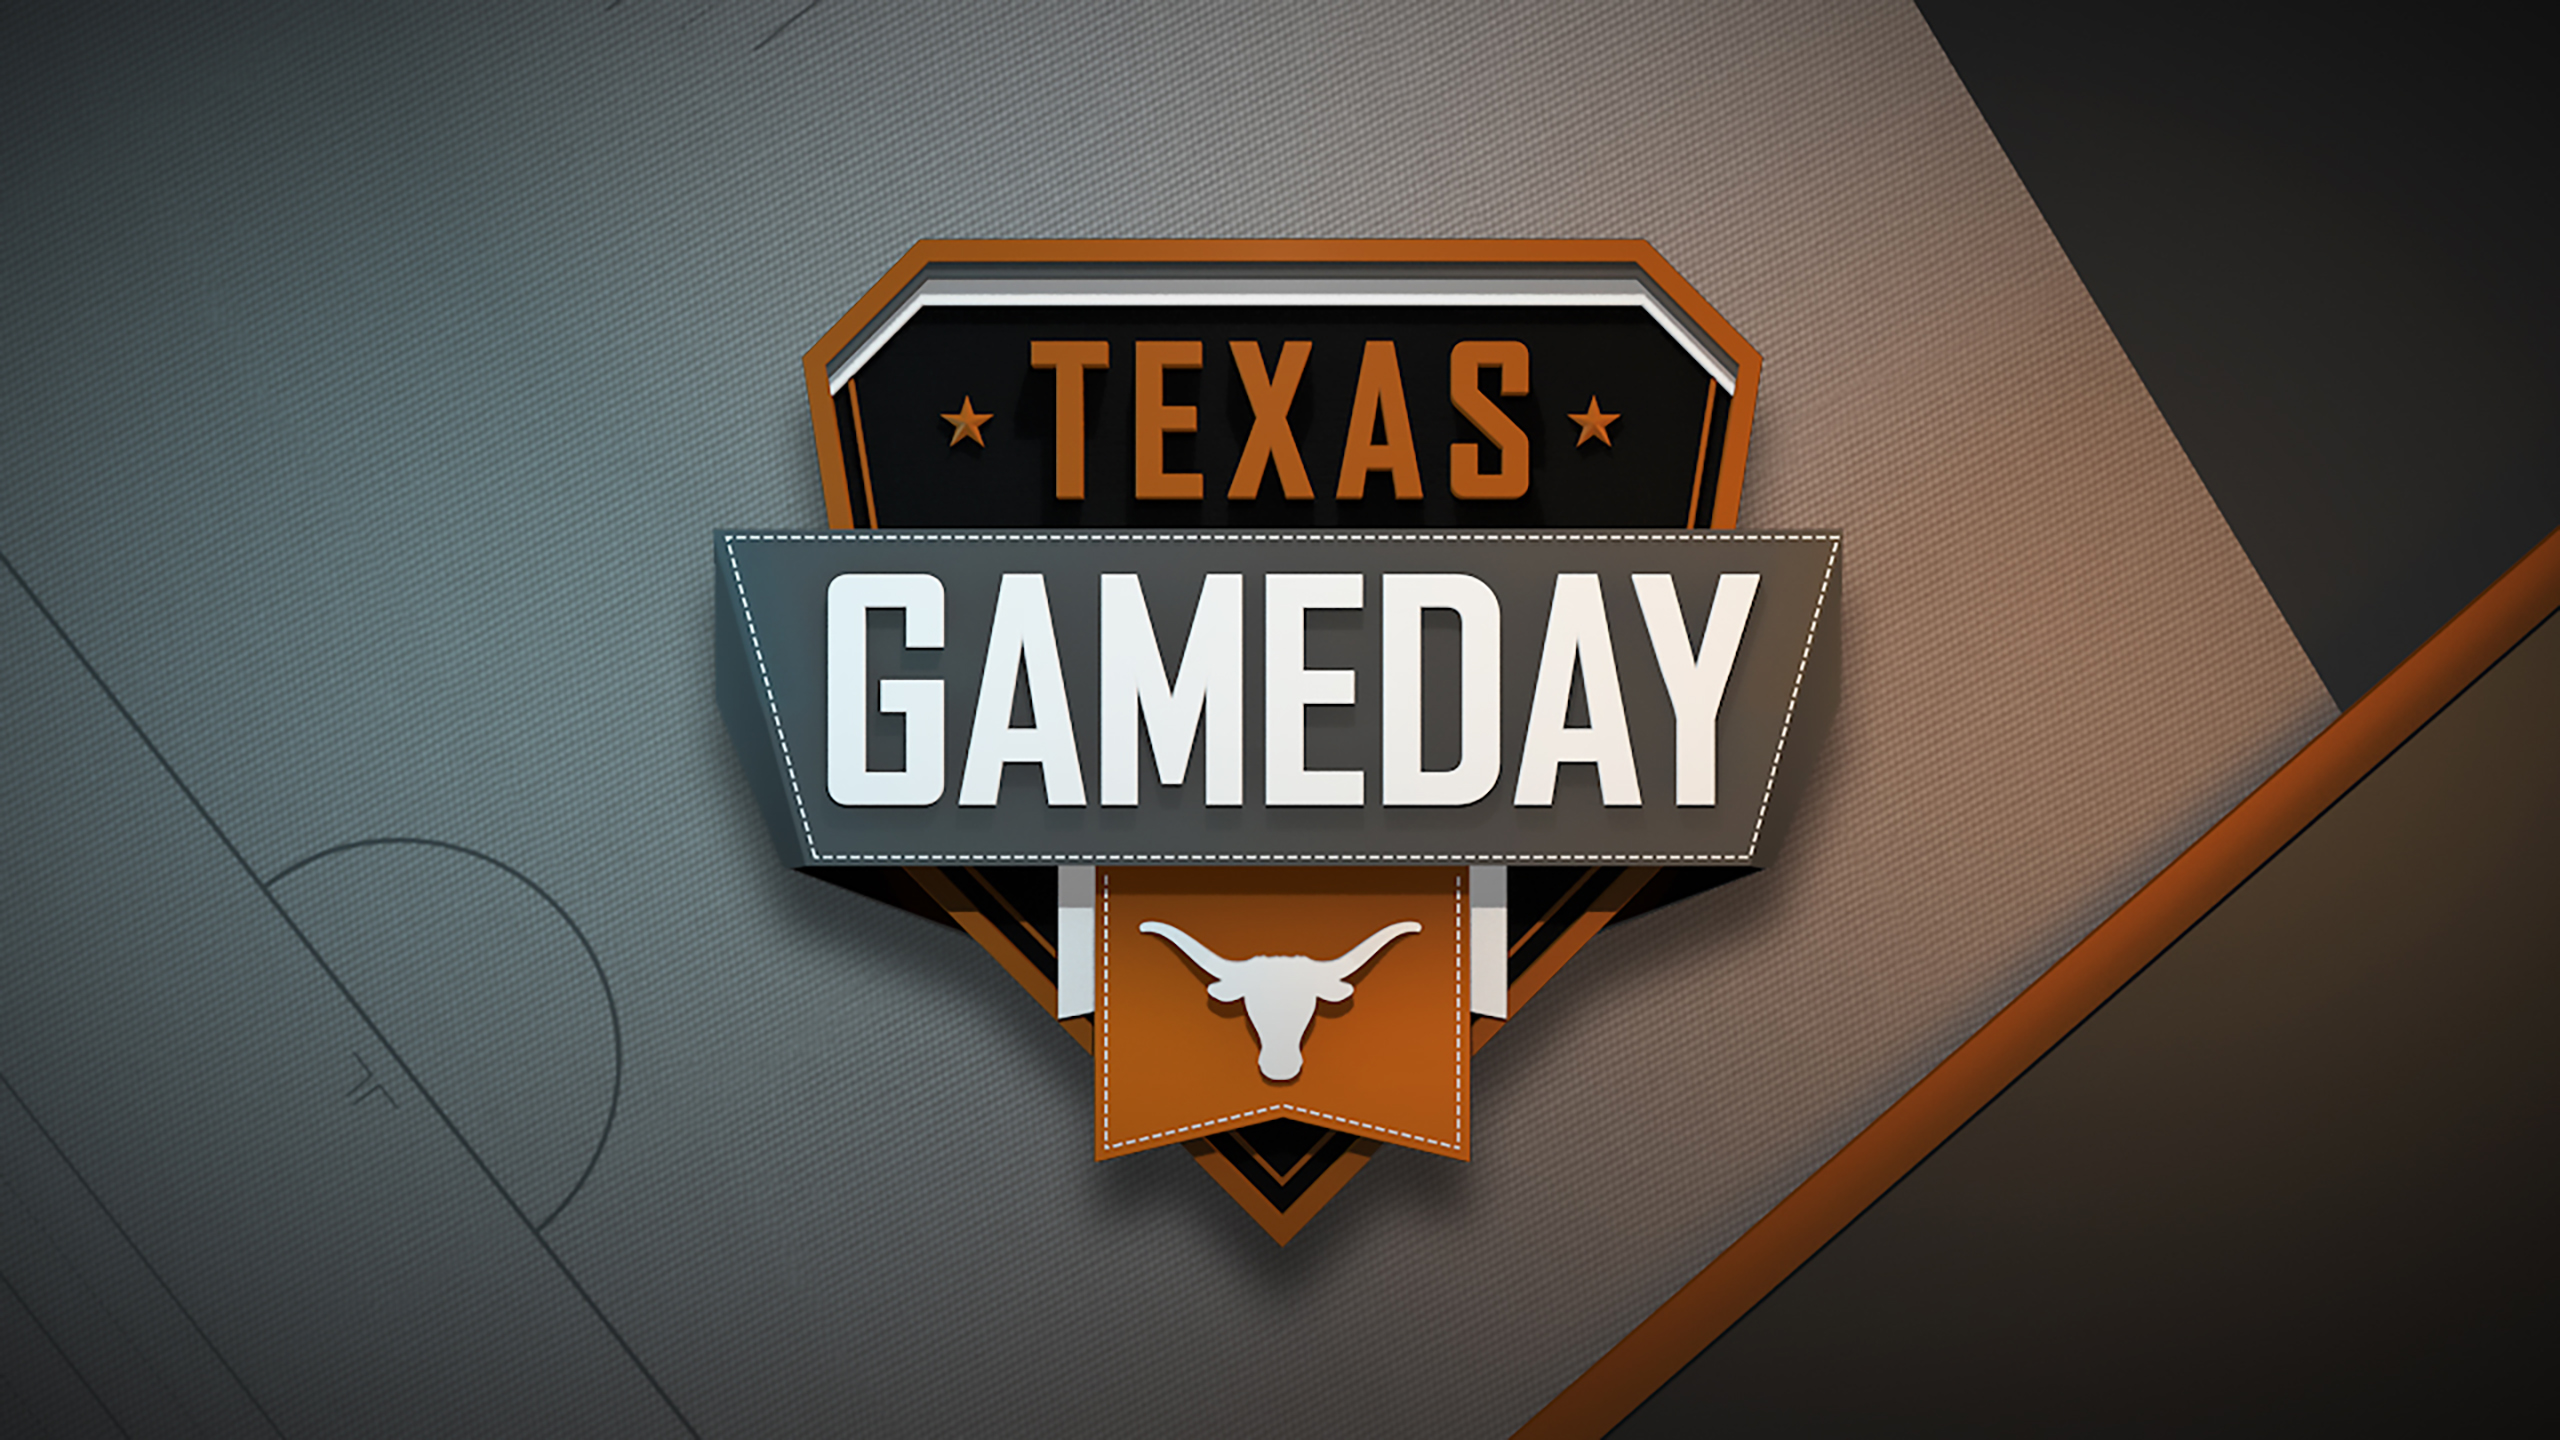 Texas Basketball GameDay